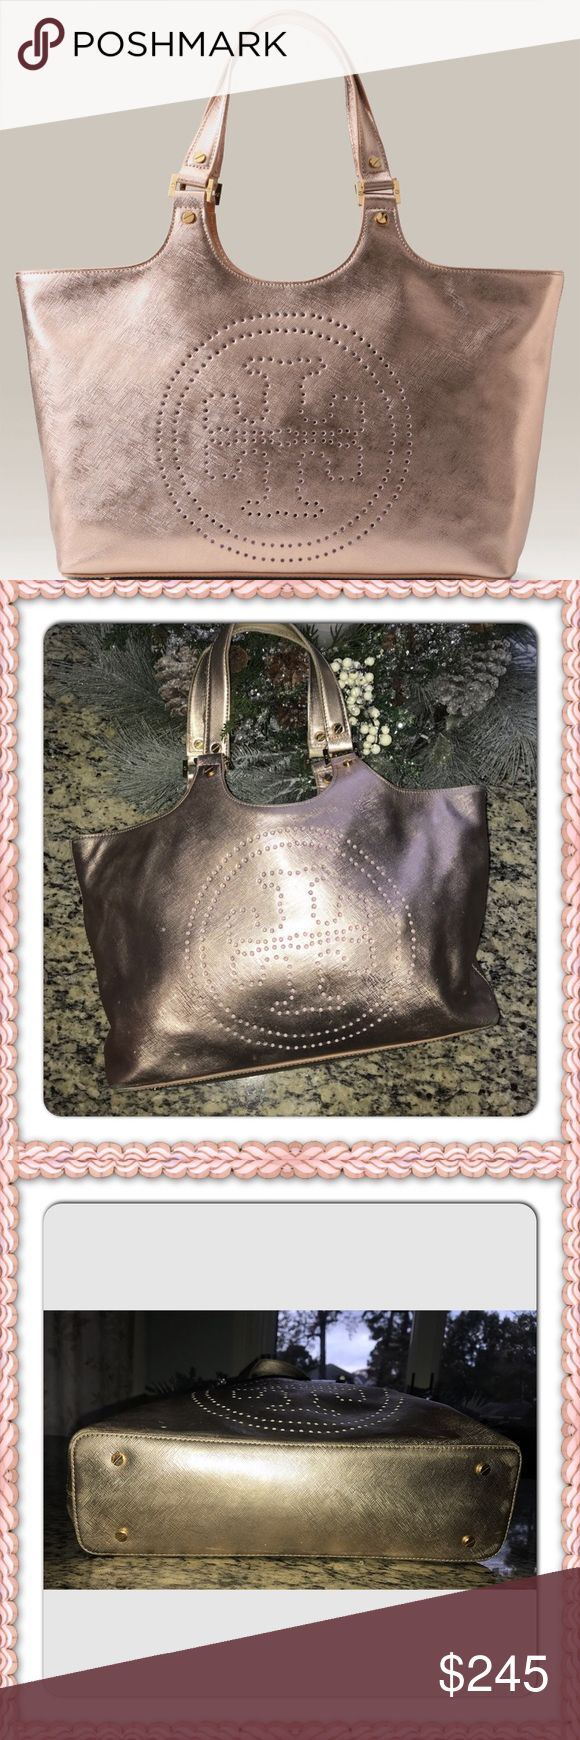 Tory Burch rose gold leather tote Gorgeous Tory Burch rose gold leather Medium  tote. This bag is in excellent condition.  A beautiful neutral to add to your collection!! Tory Burch Bags Totes